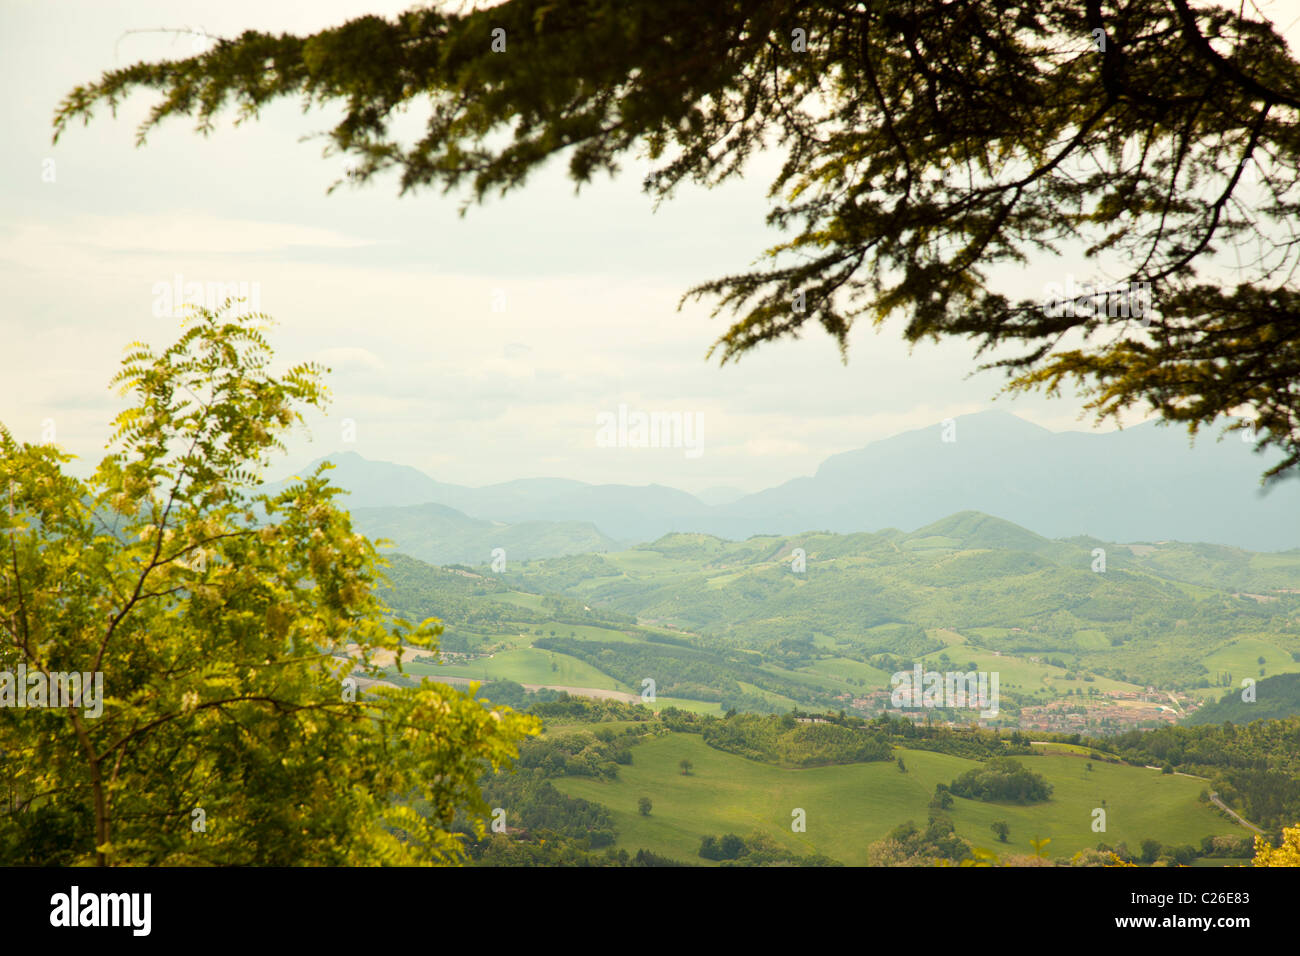 Rolling hills and lush countryside in Le Marche Italy. - Stock Image